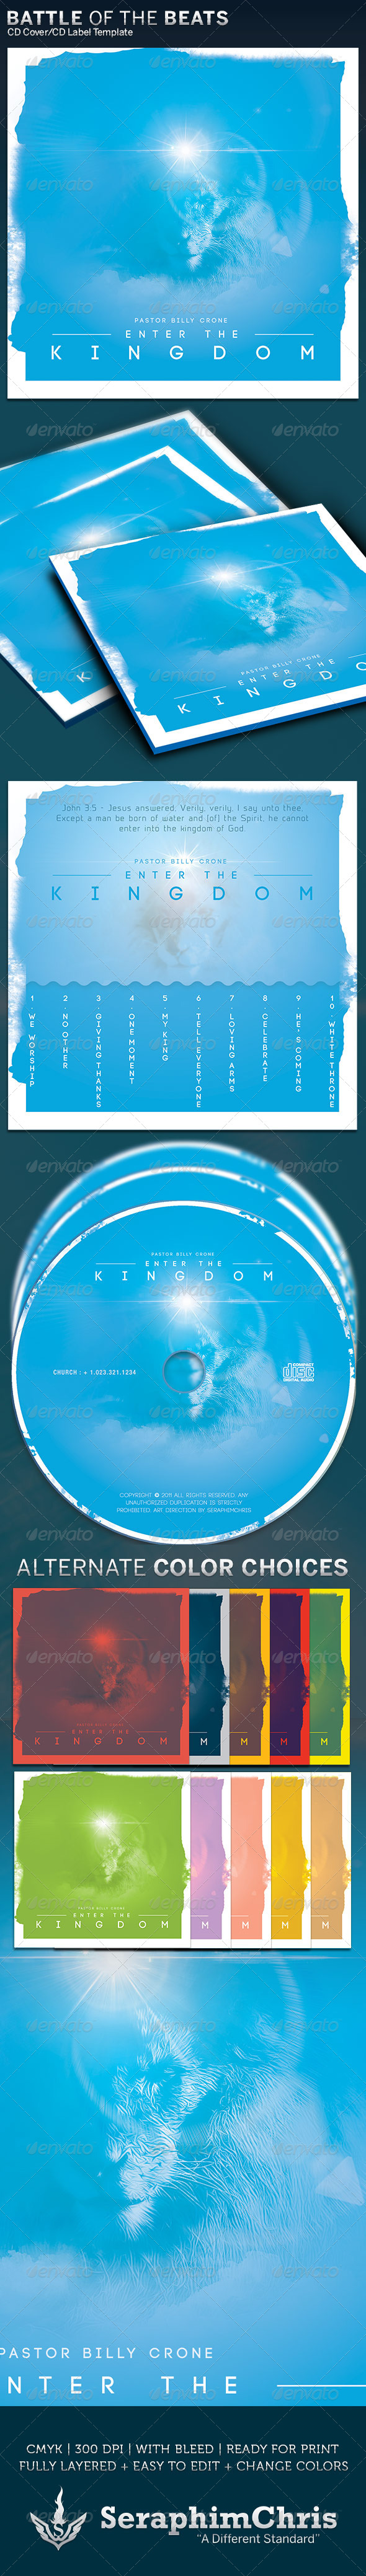 Enter the Kingdom CD Cover Artwork Template - CD & DVD Artwork Print Templates